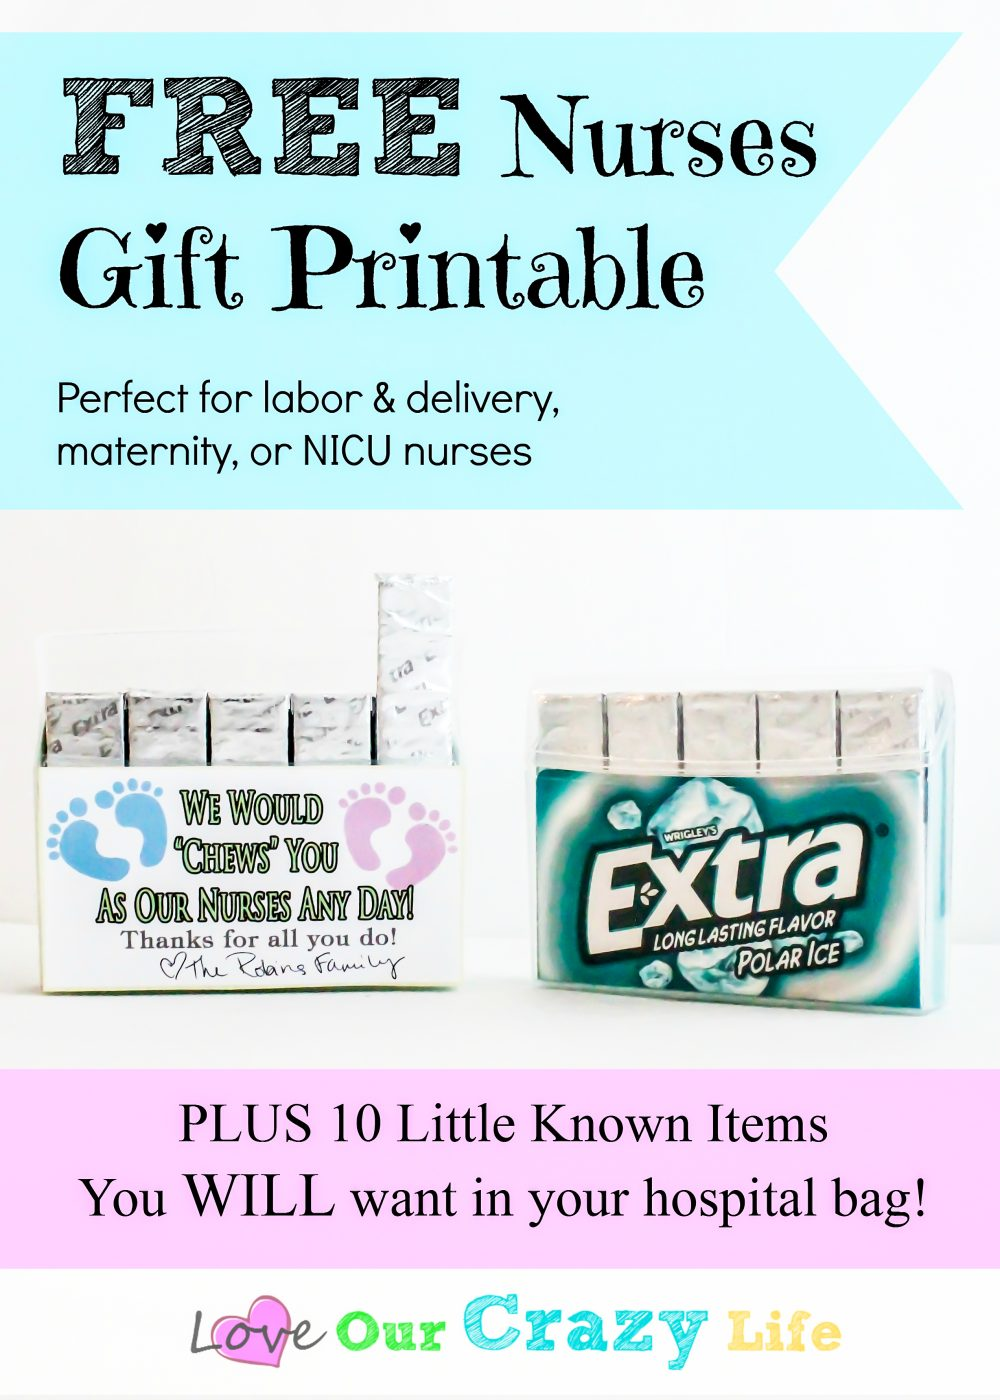 Thank You Gifts For Nicu Nurses - Gift Ideas